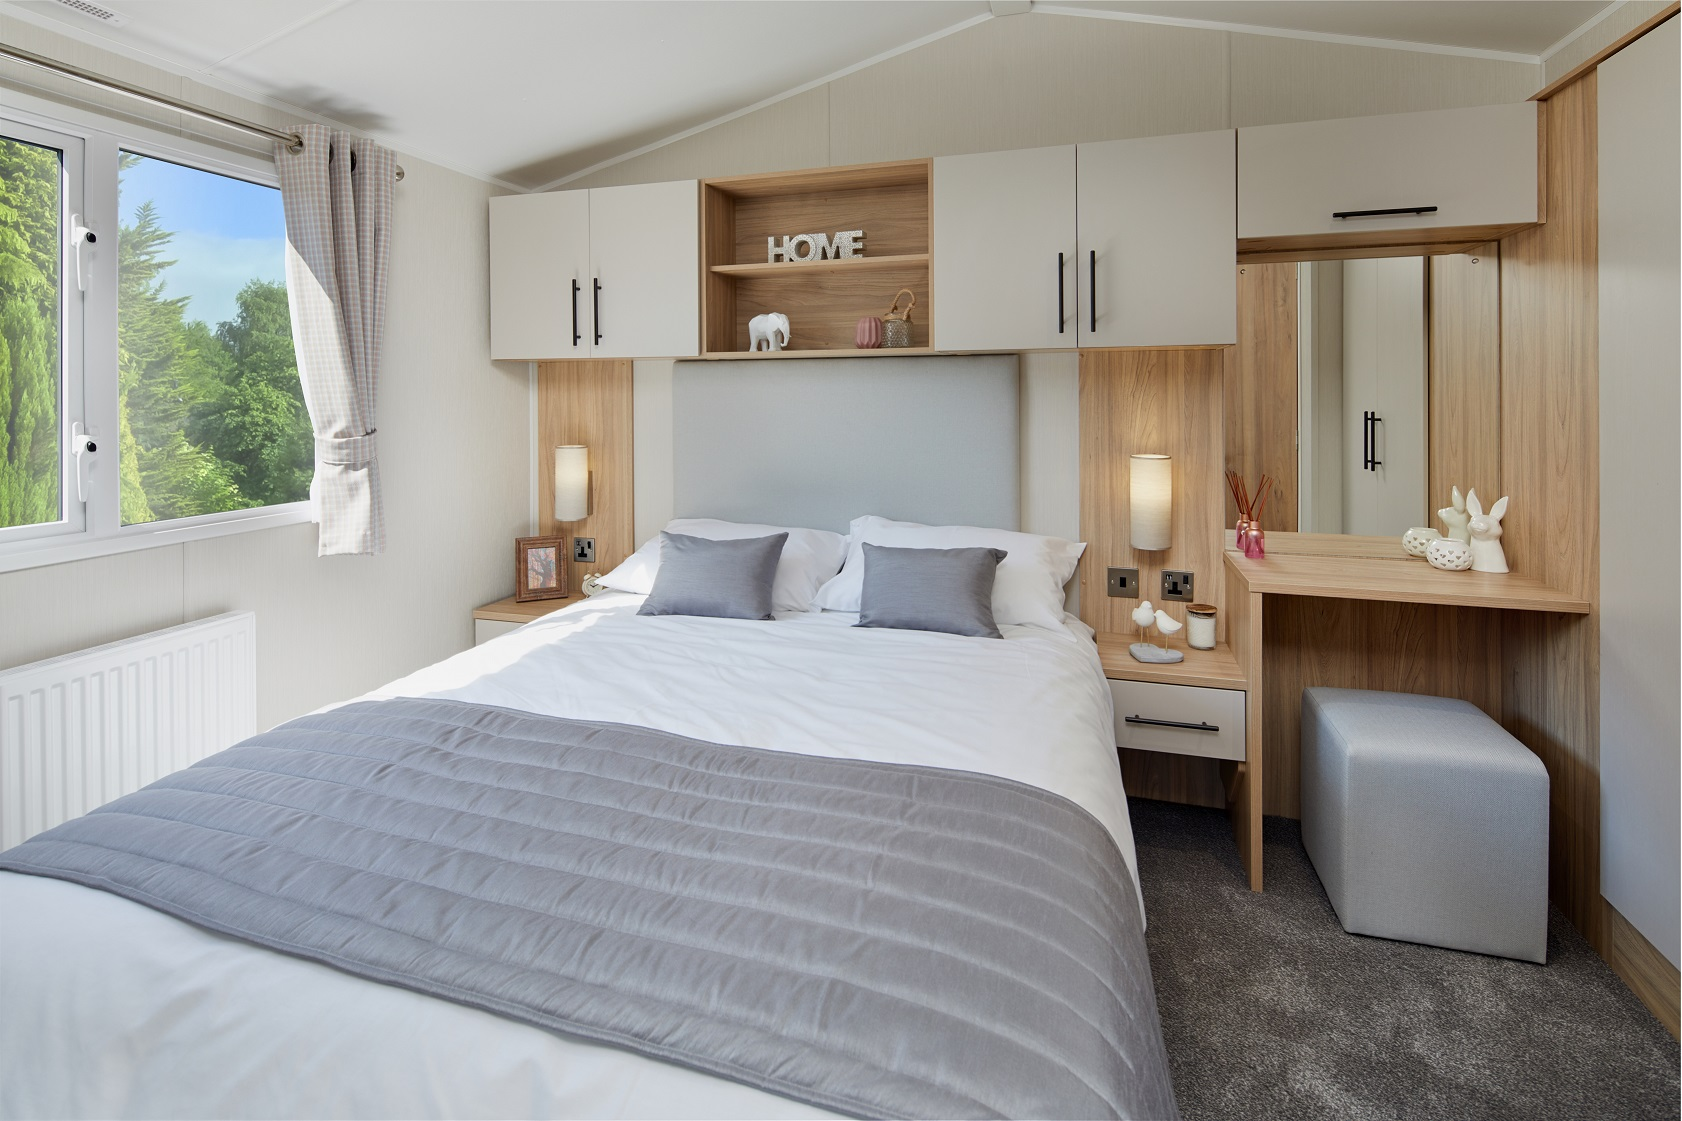 Willerby Manor: New Static Caravans and Holiday Homes for Sale, Clifton, Morpeth Large Image 4